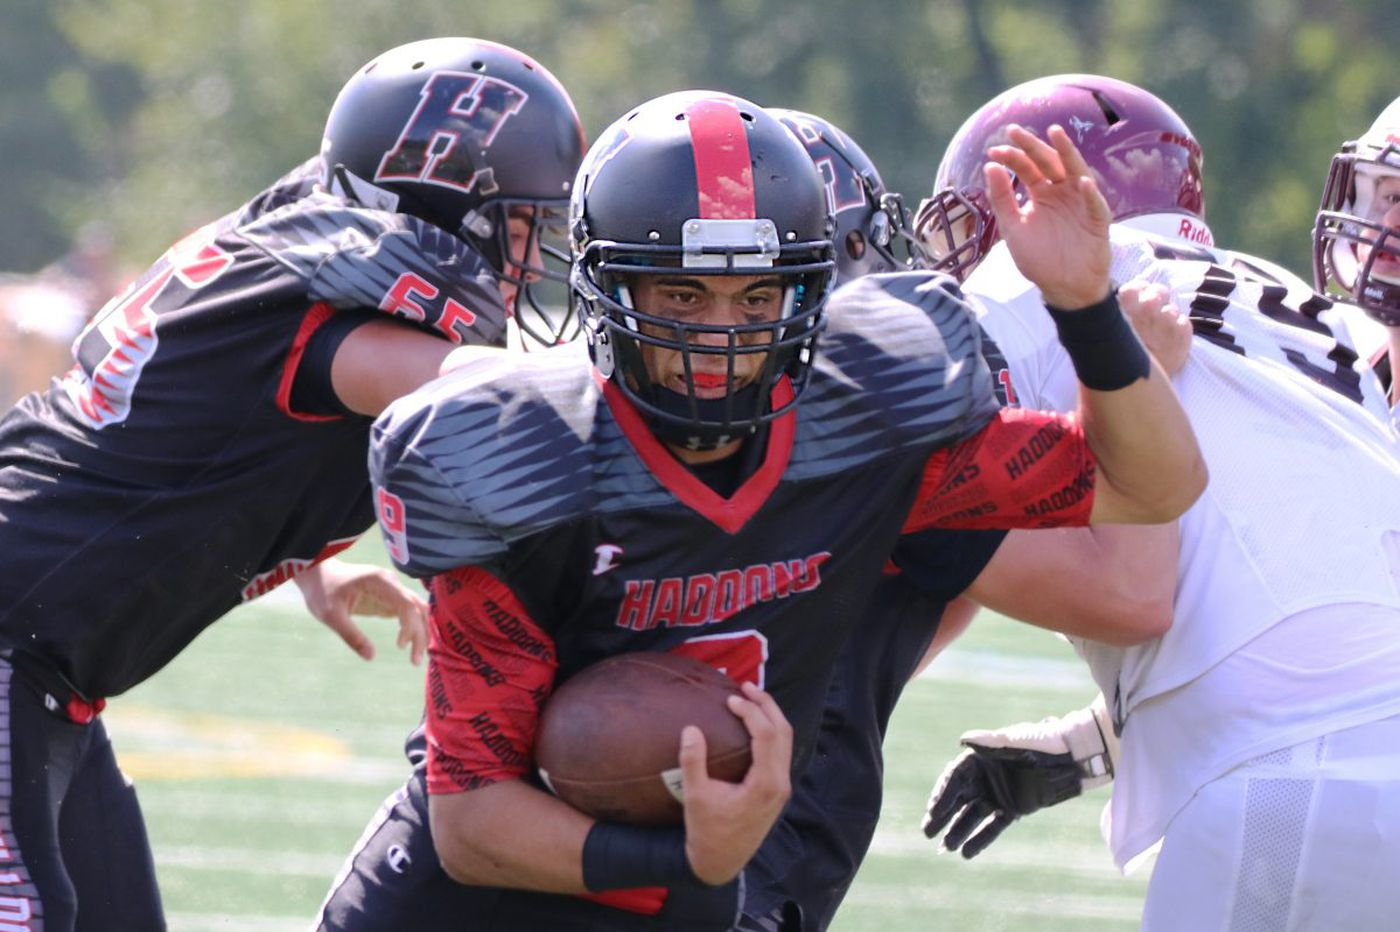 Cinnaminson-Haddonfield football features uncle vs. nephew matchup